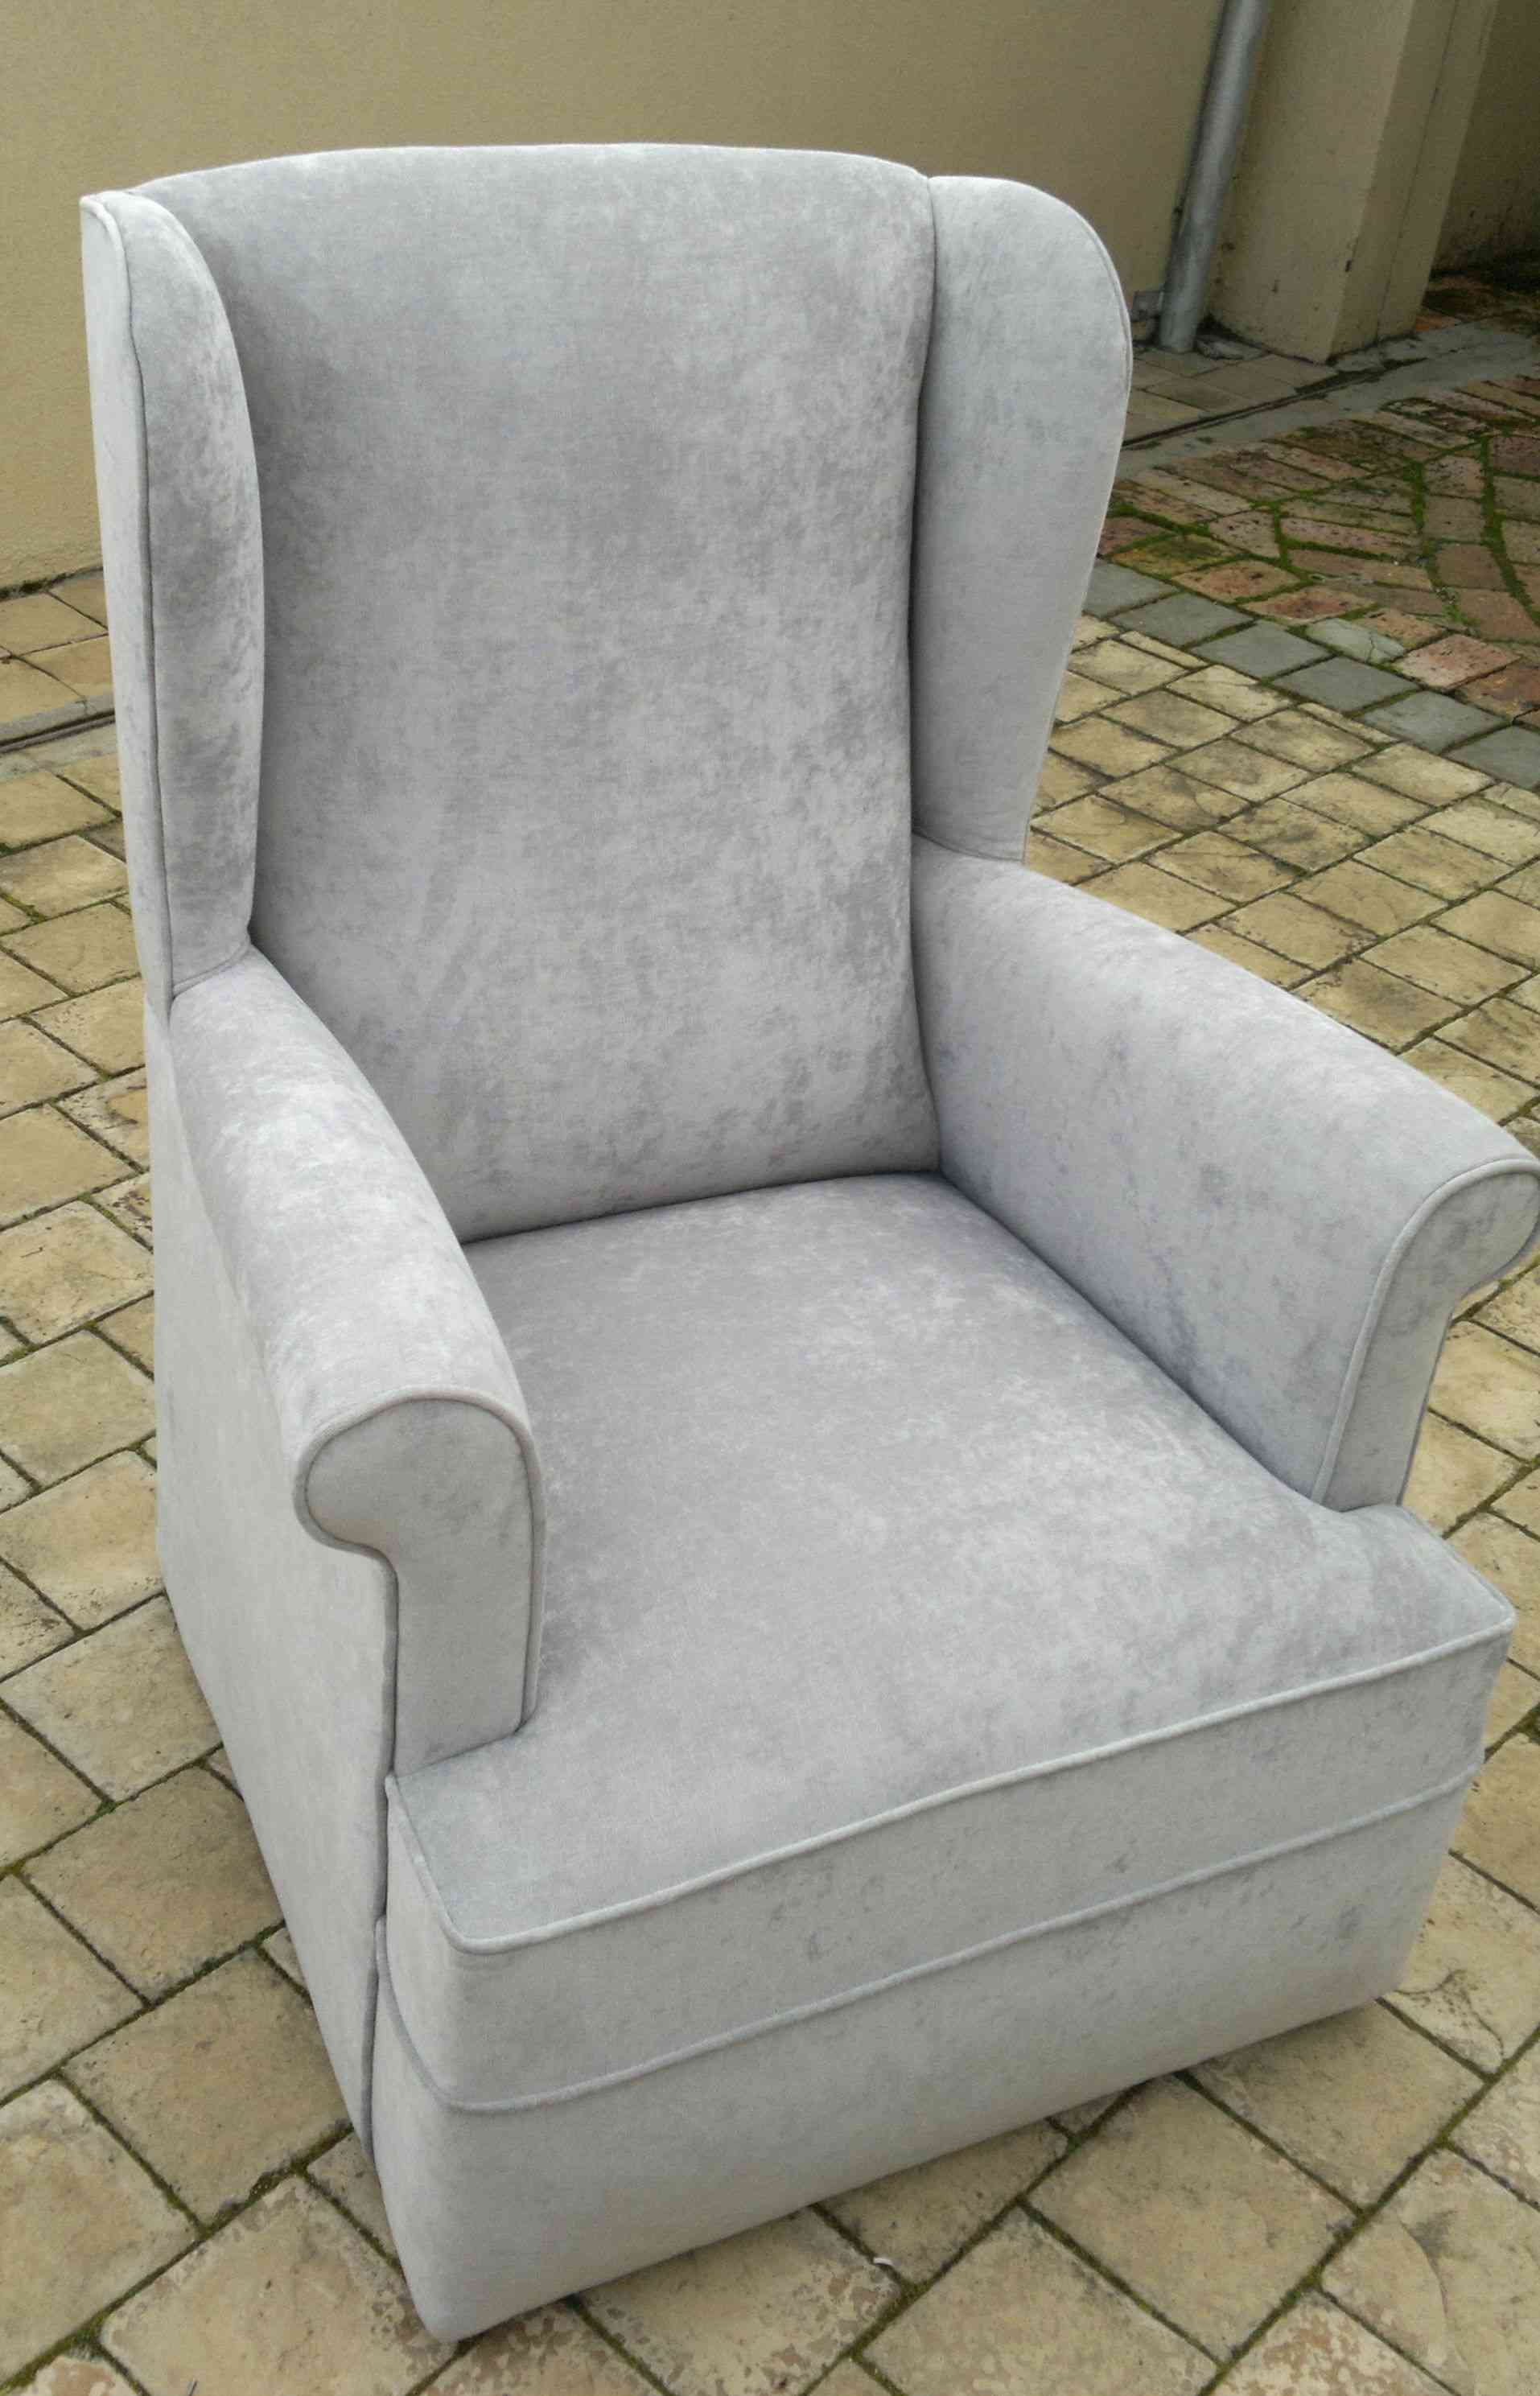 wingback rocking chair cape town bean bag baby vintage upholstery